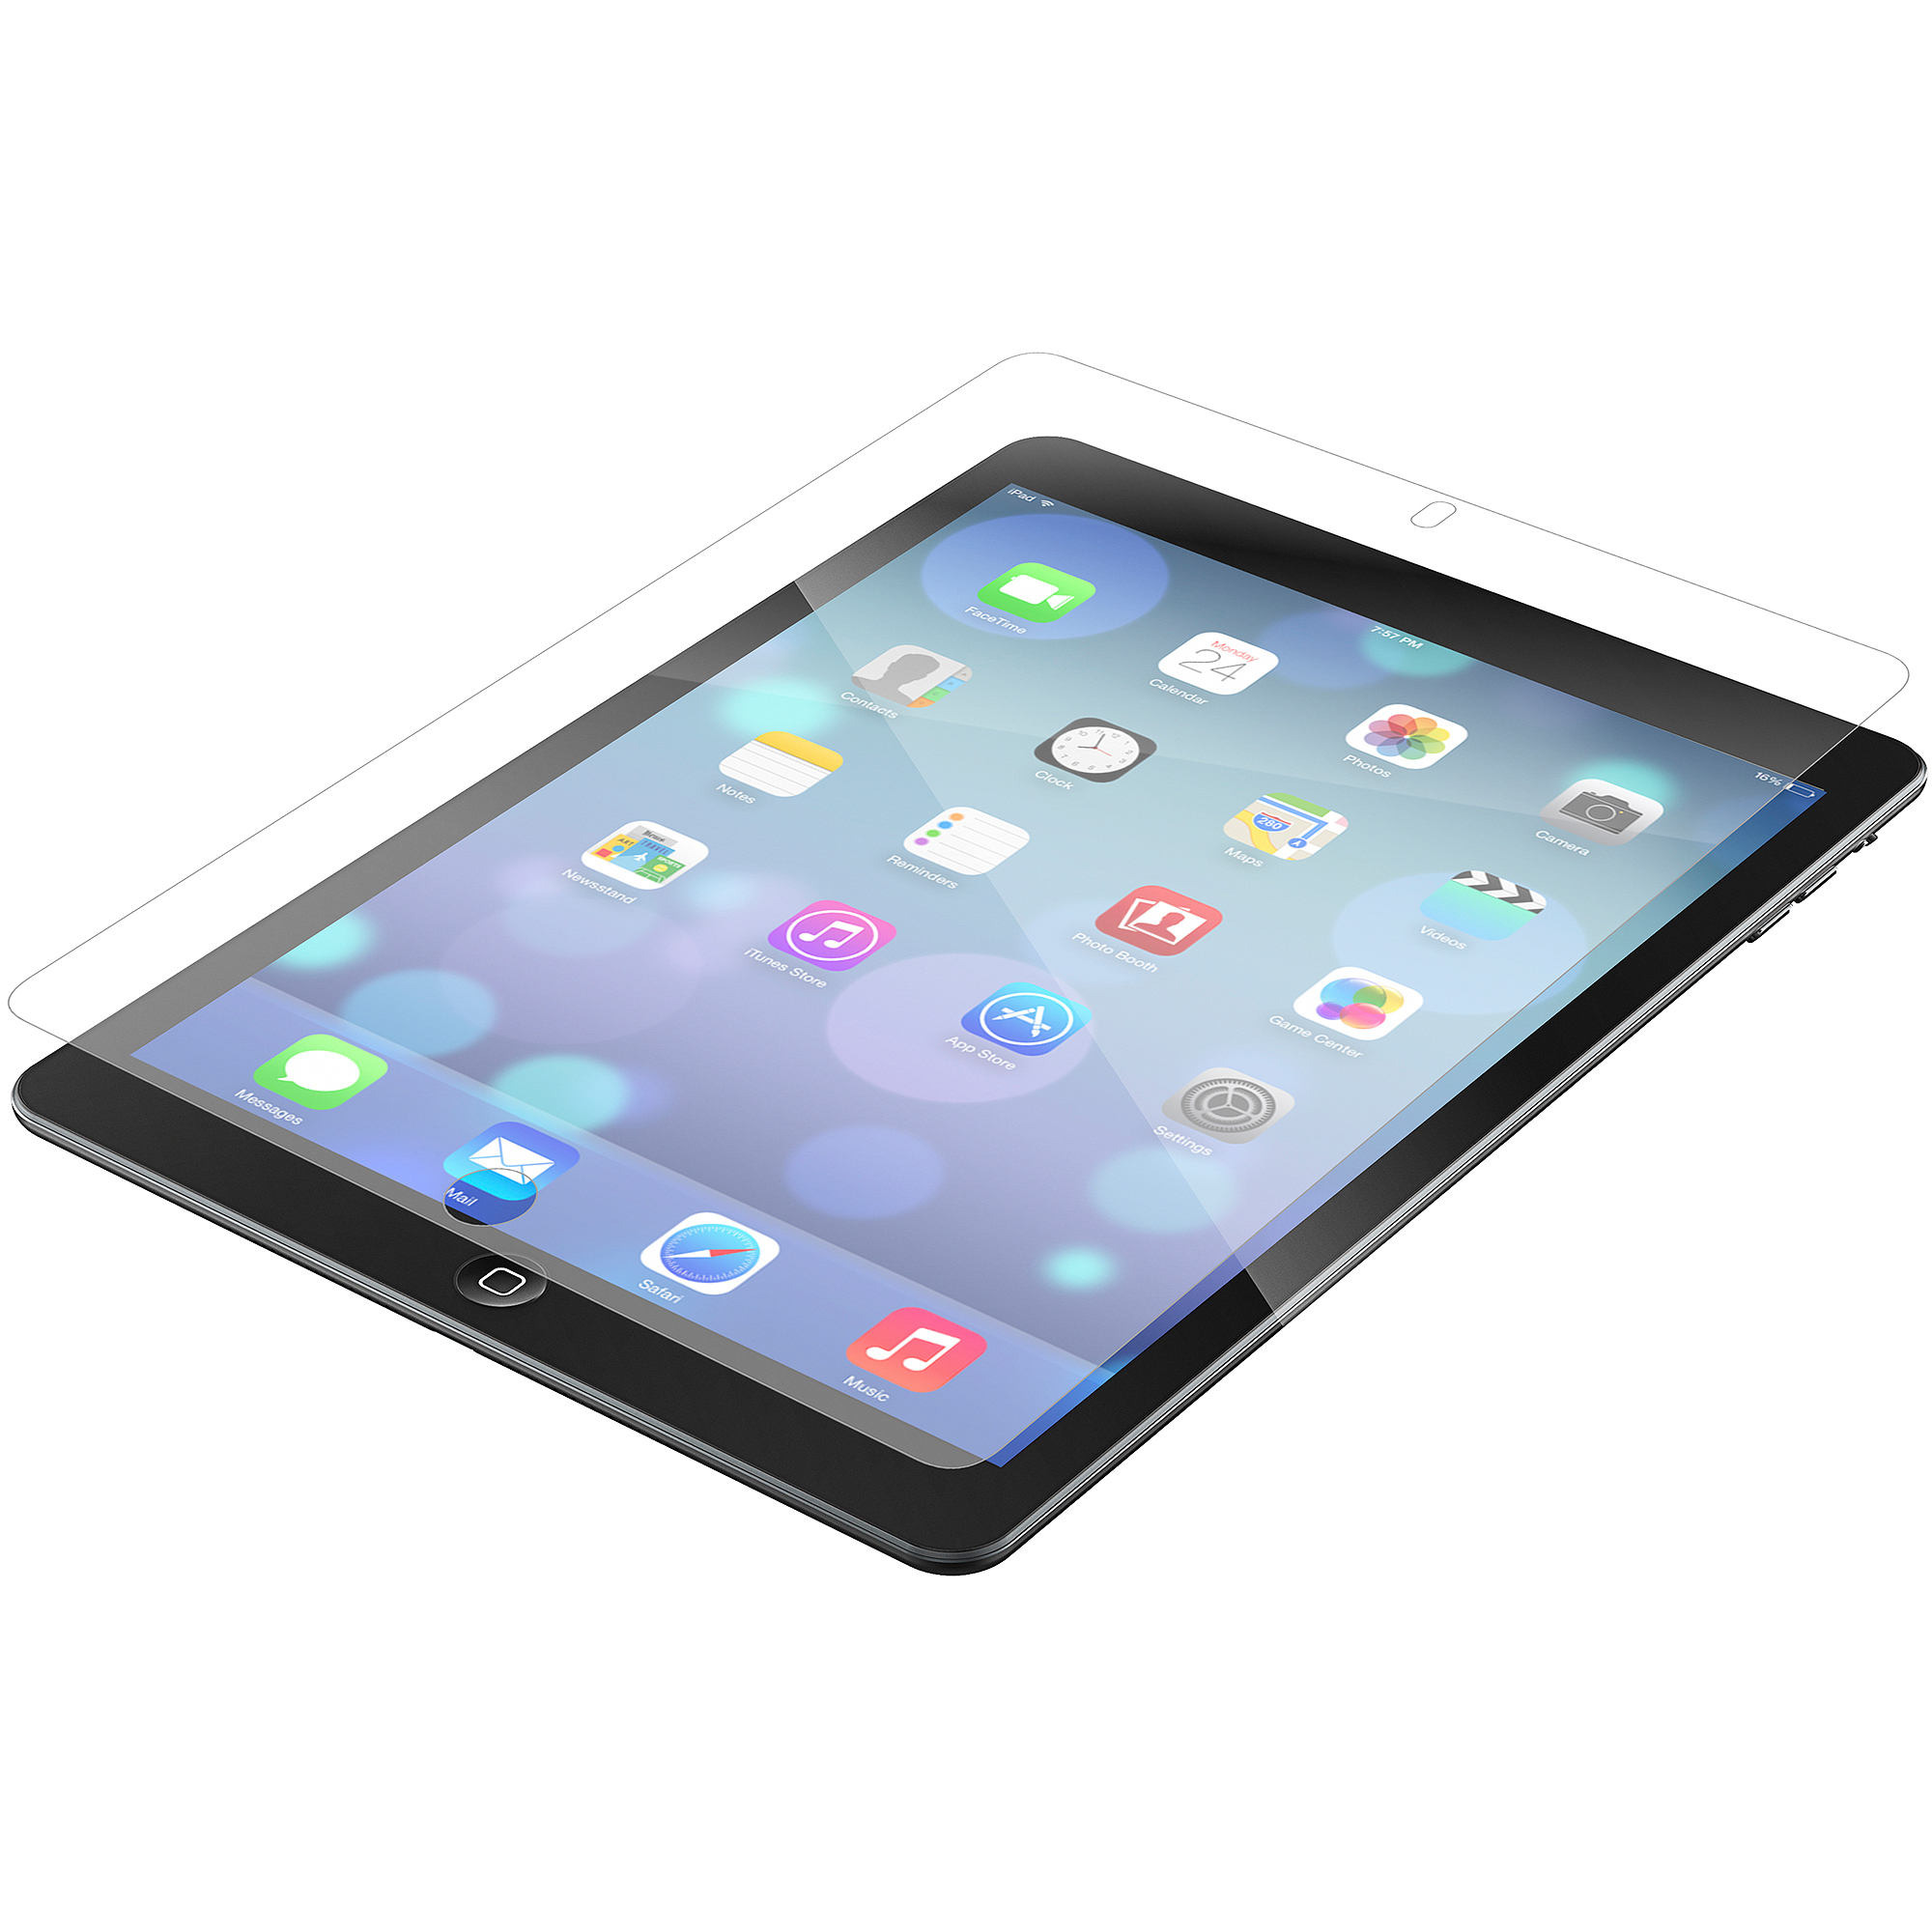 InvisibleShield Original Screen Protector for the Apple iPad Air/Air 2/9.7-inch iPad Pro